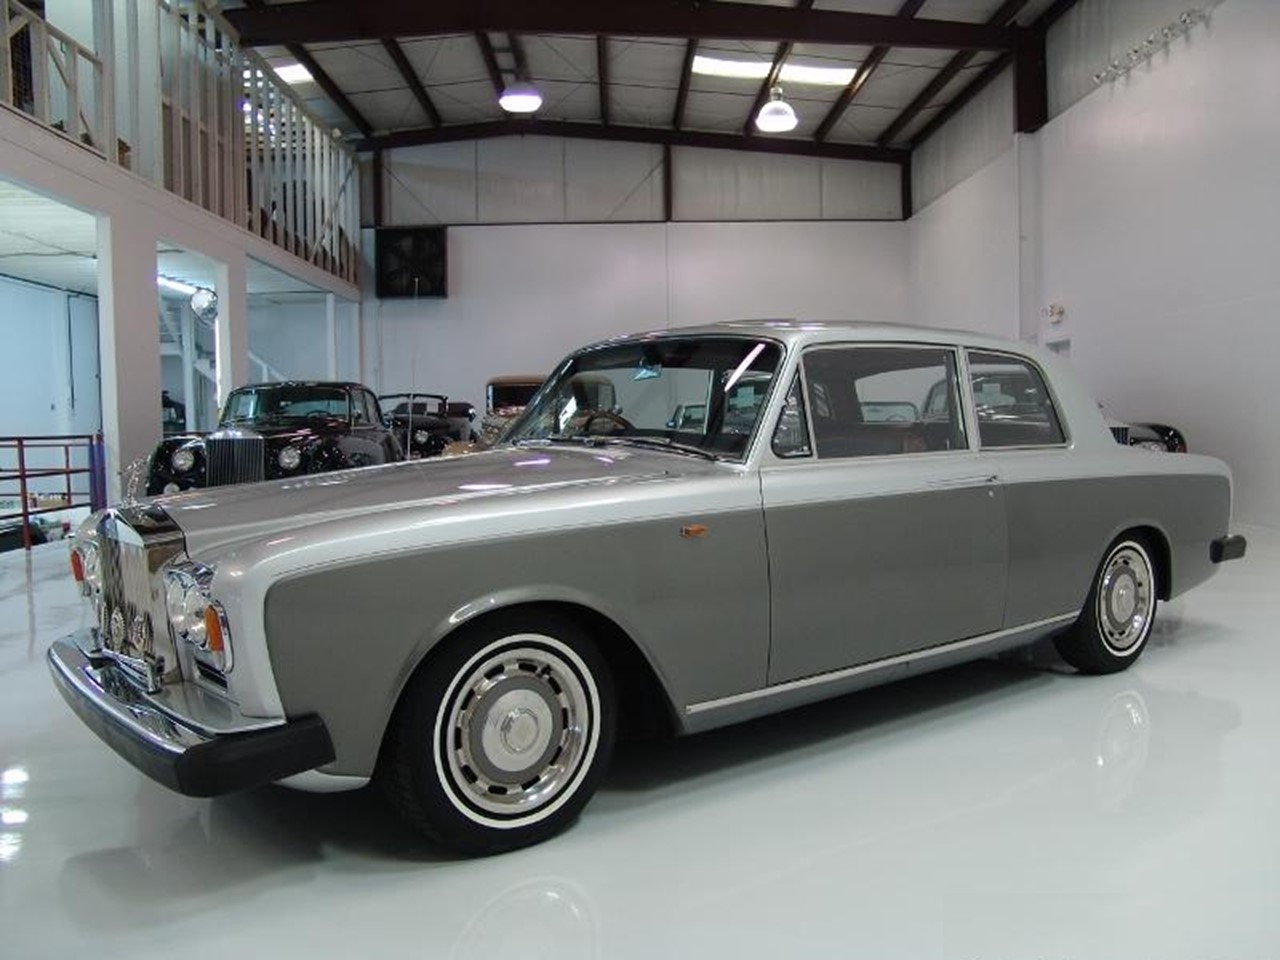 small resolution of rolls royce notoriousluxury 1966 silver shadow james young 1 w 450 rolls royce notoriousluxury rolls royce silver